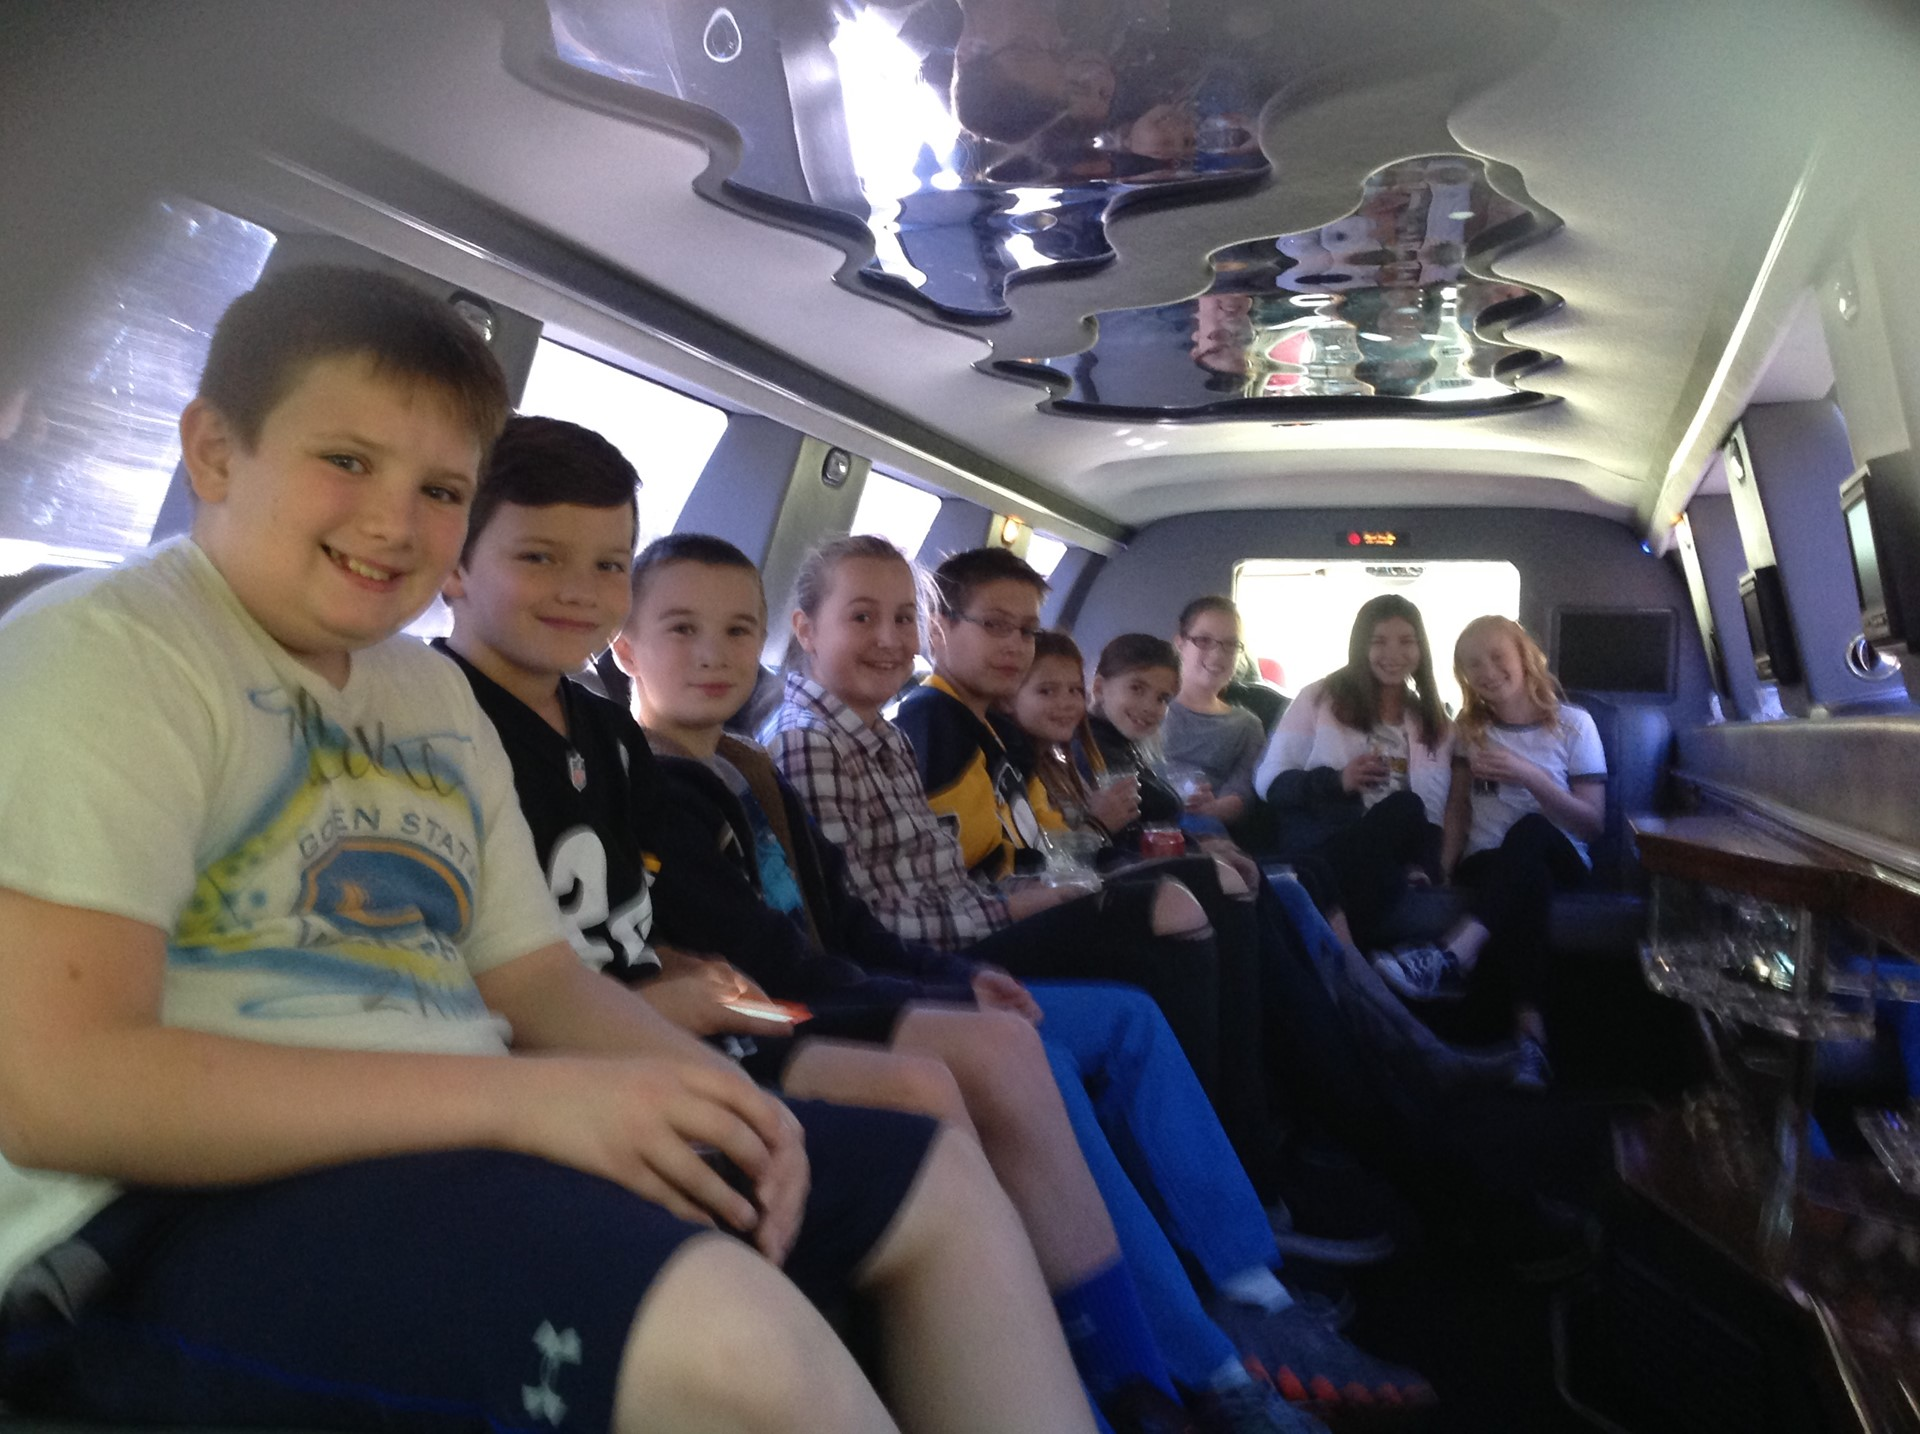 Top Sellers for the Mega Party Limo Ride